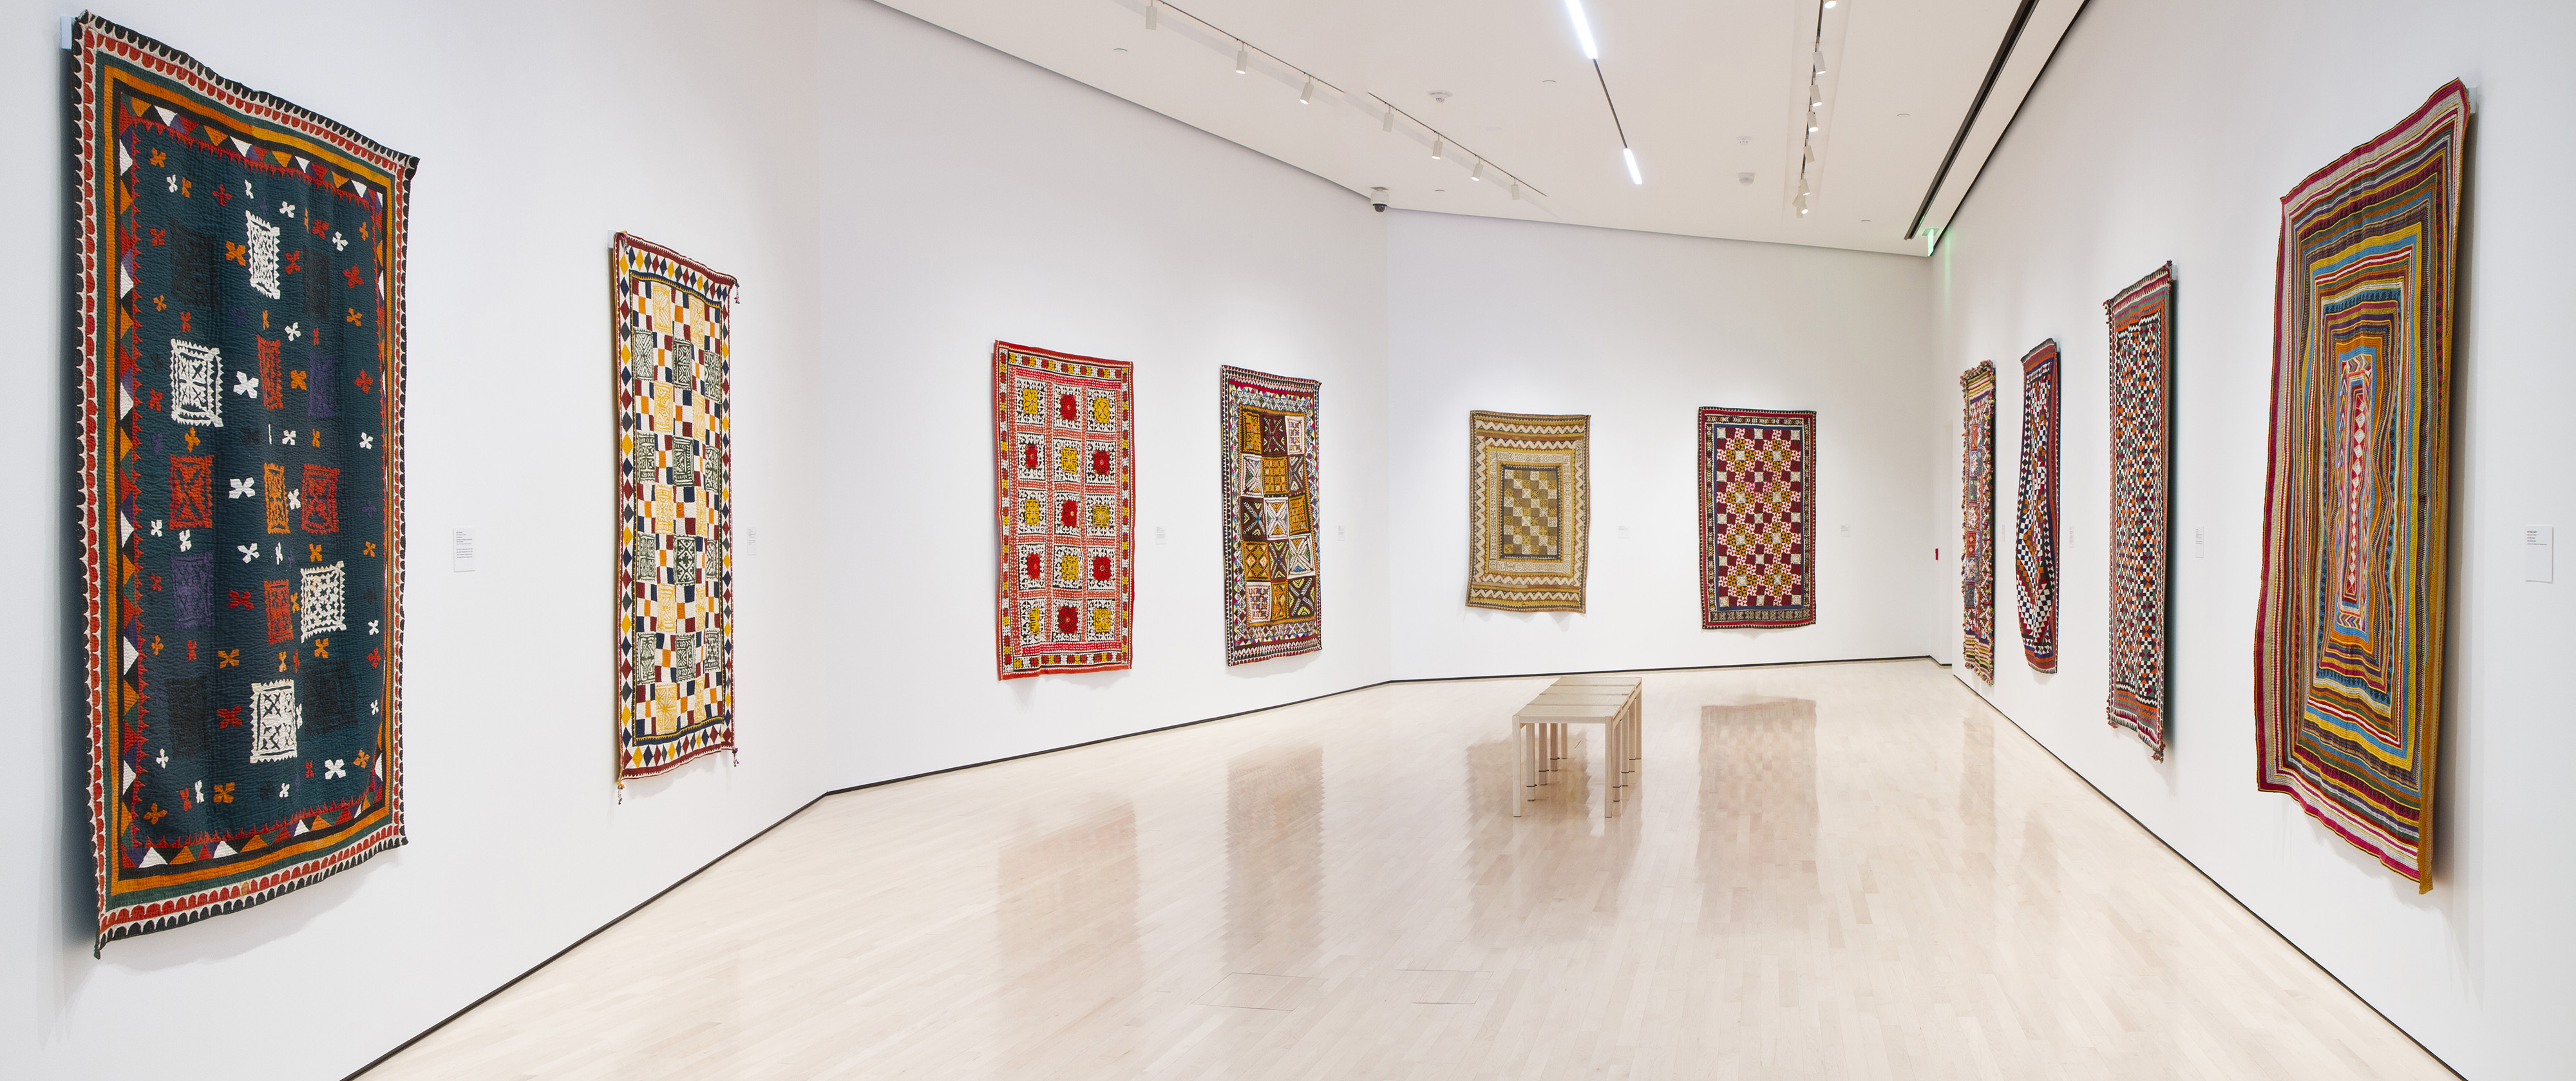 <i>Ralli Quilts</i>, installation view at the Eli and Edythe Broad Art Museum at Michigan State University, 2014. Photo: Eat Pomegranate Photography